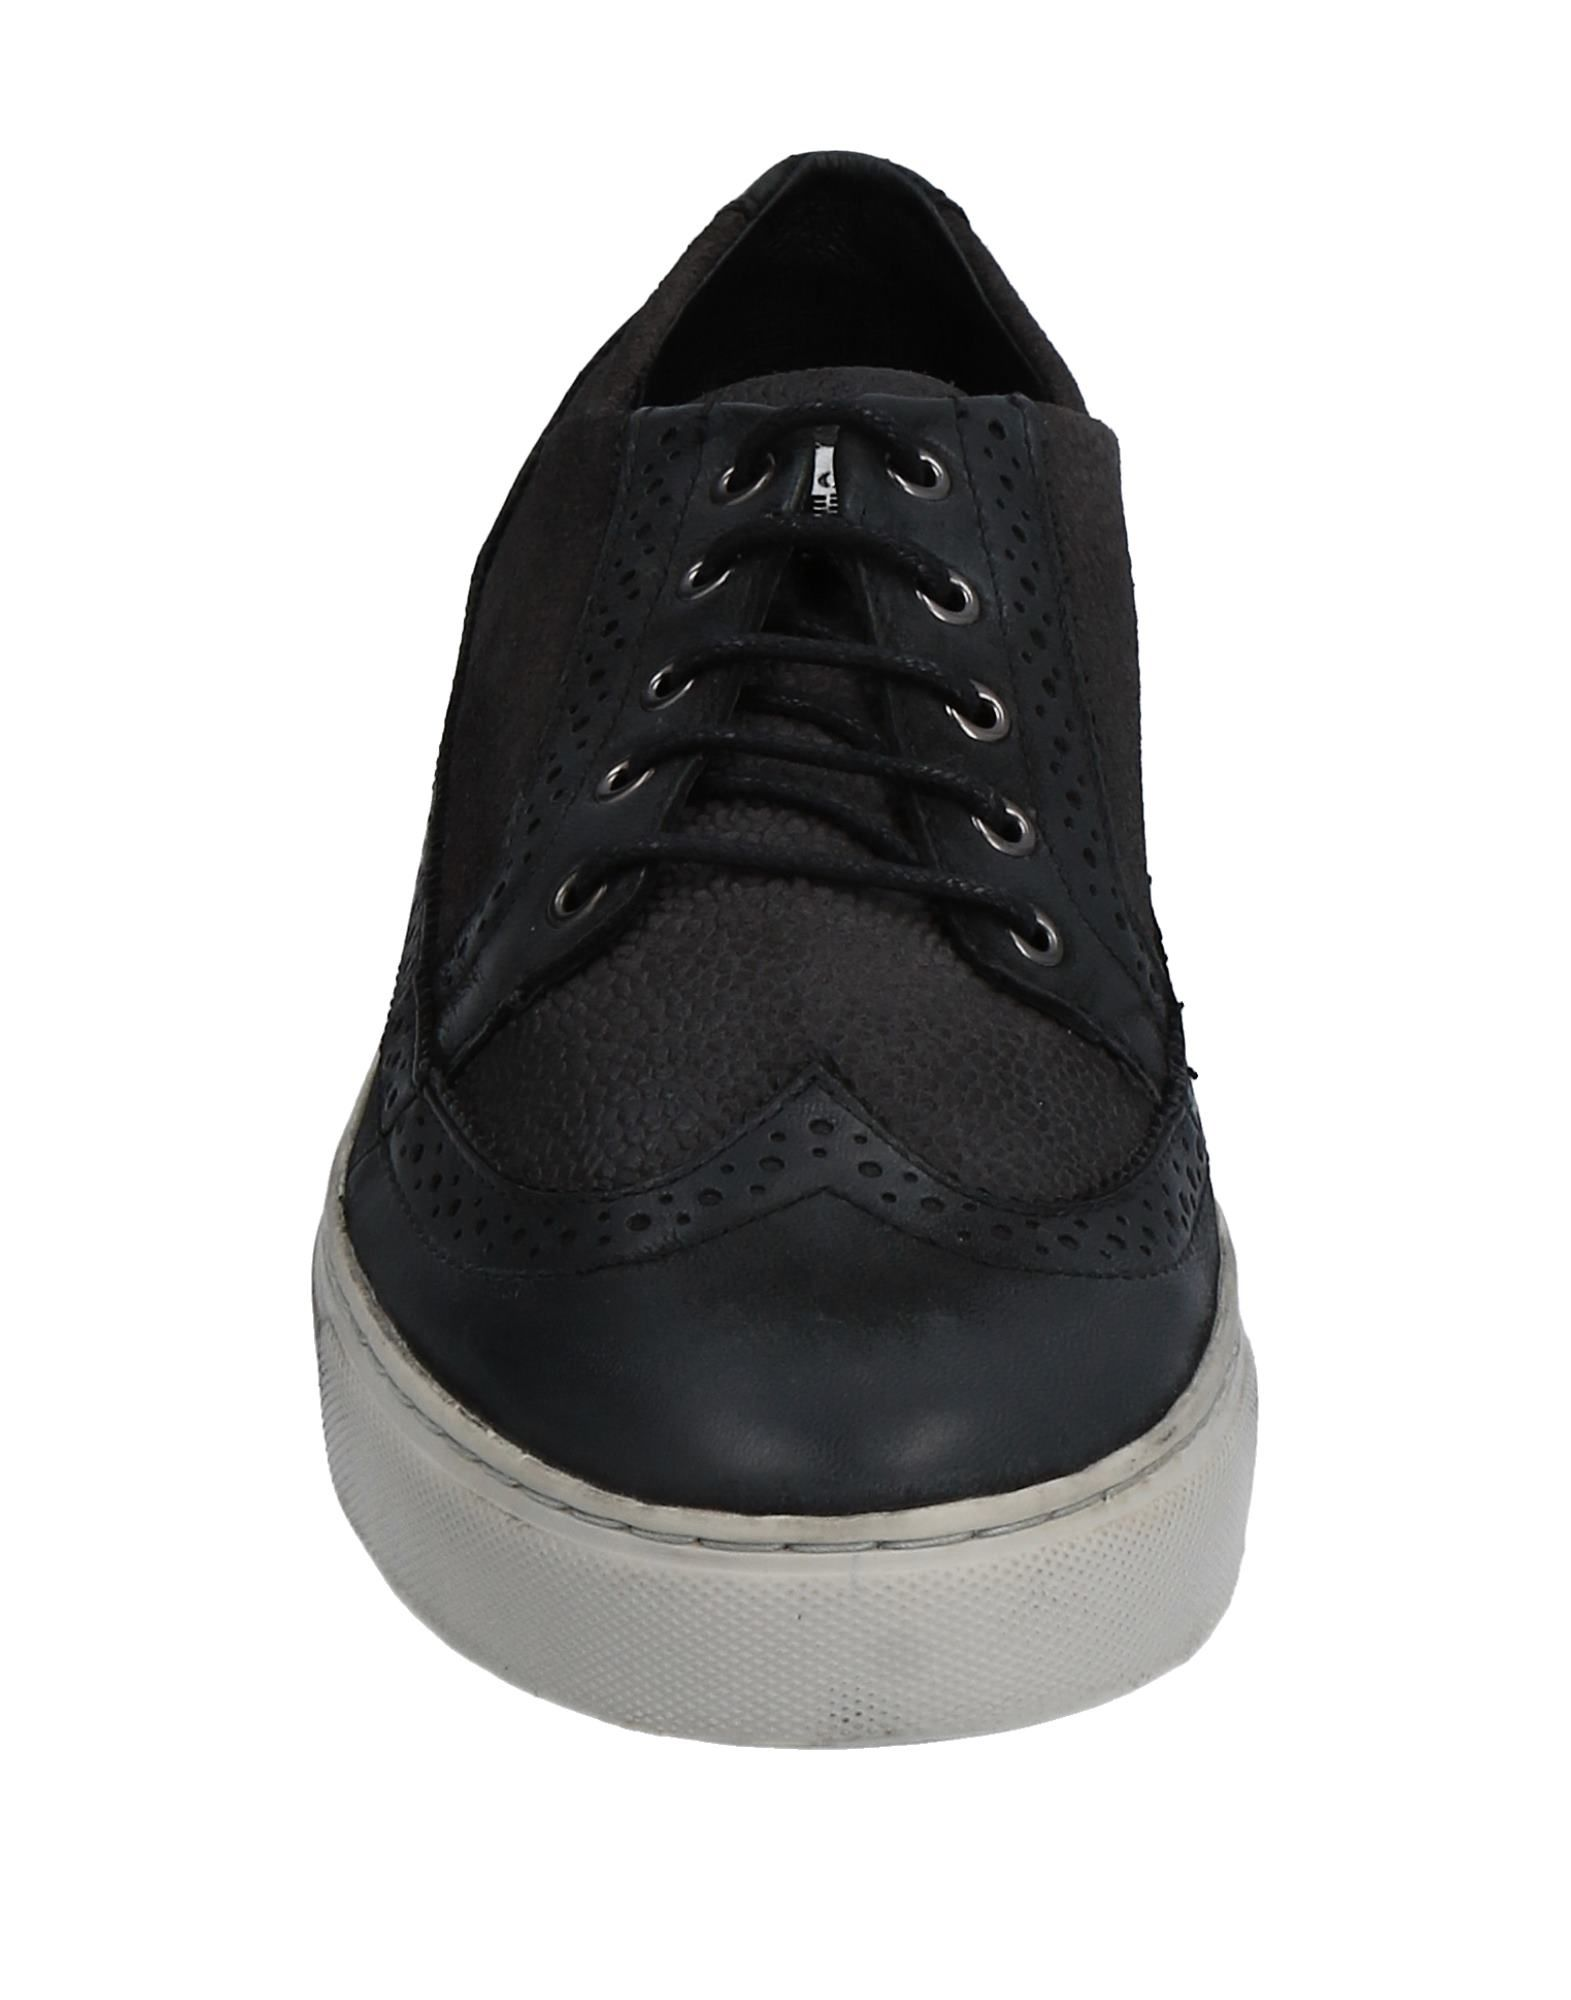 Crime London Sneakers Sneakers - Men Crime London Sneakers Sneakers online on  Canada - 11531601WA 05e675